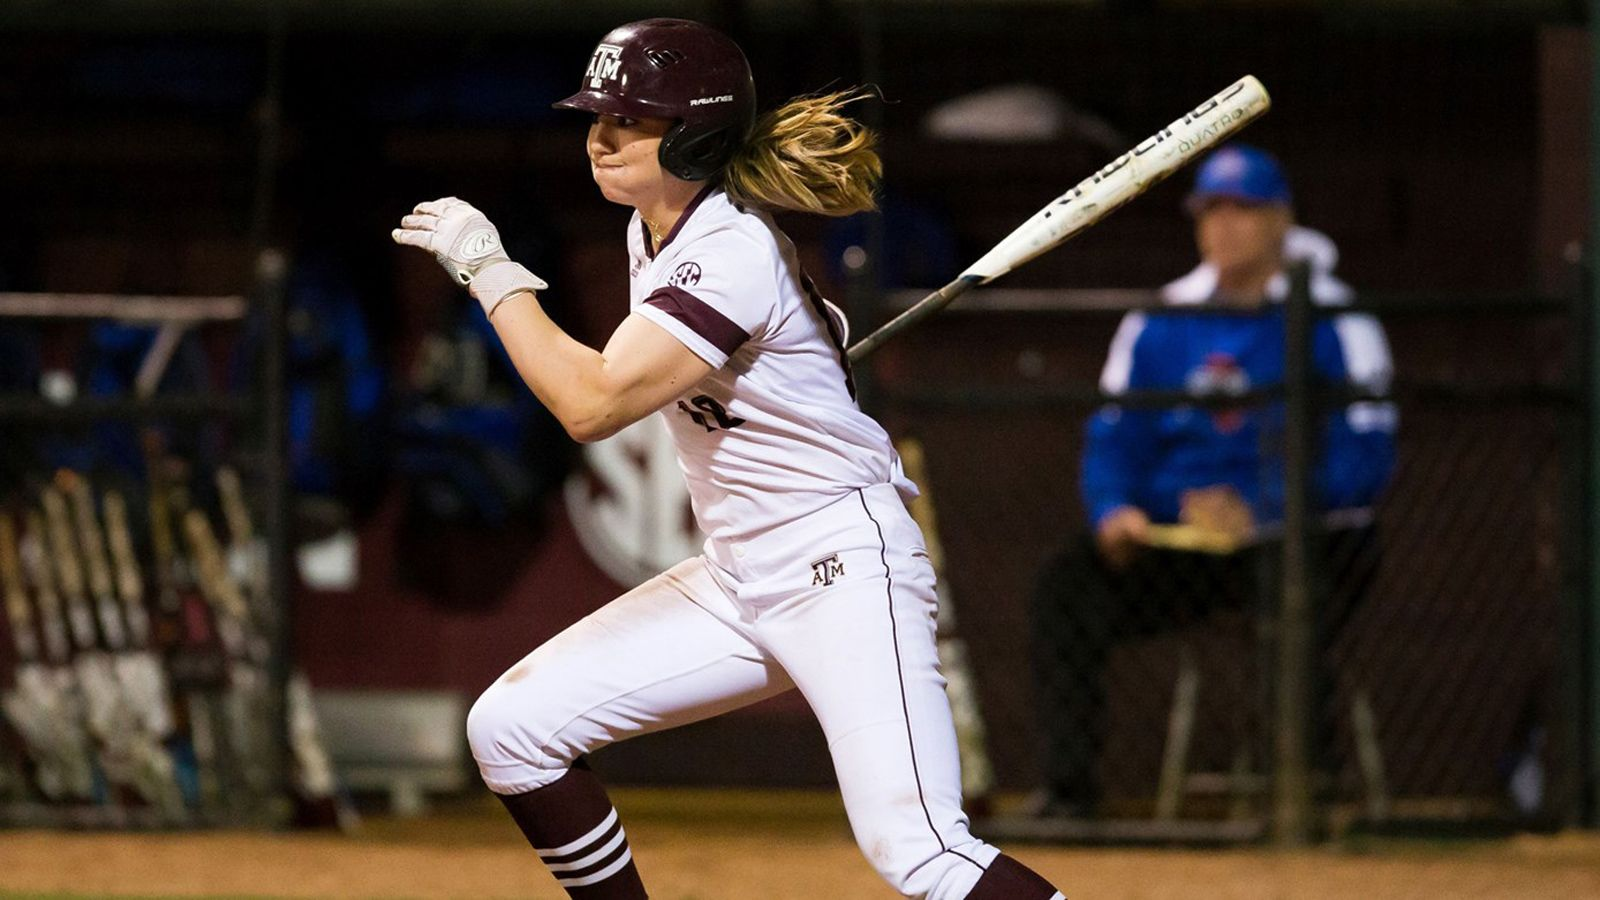 Hudek's long ball lifts No. 9 Aggies past No. 25 Irish